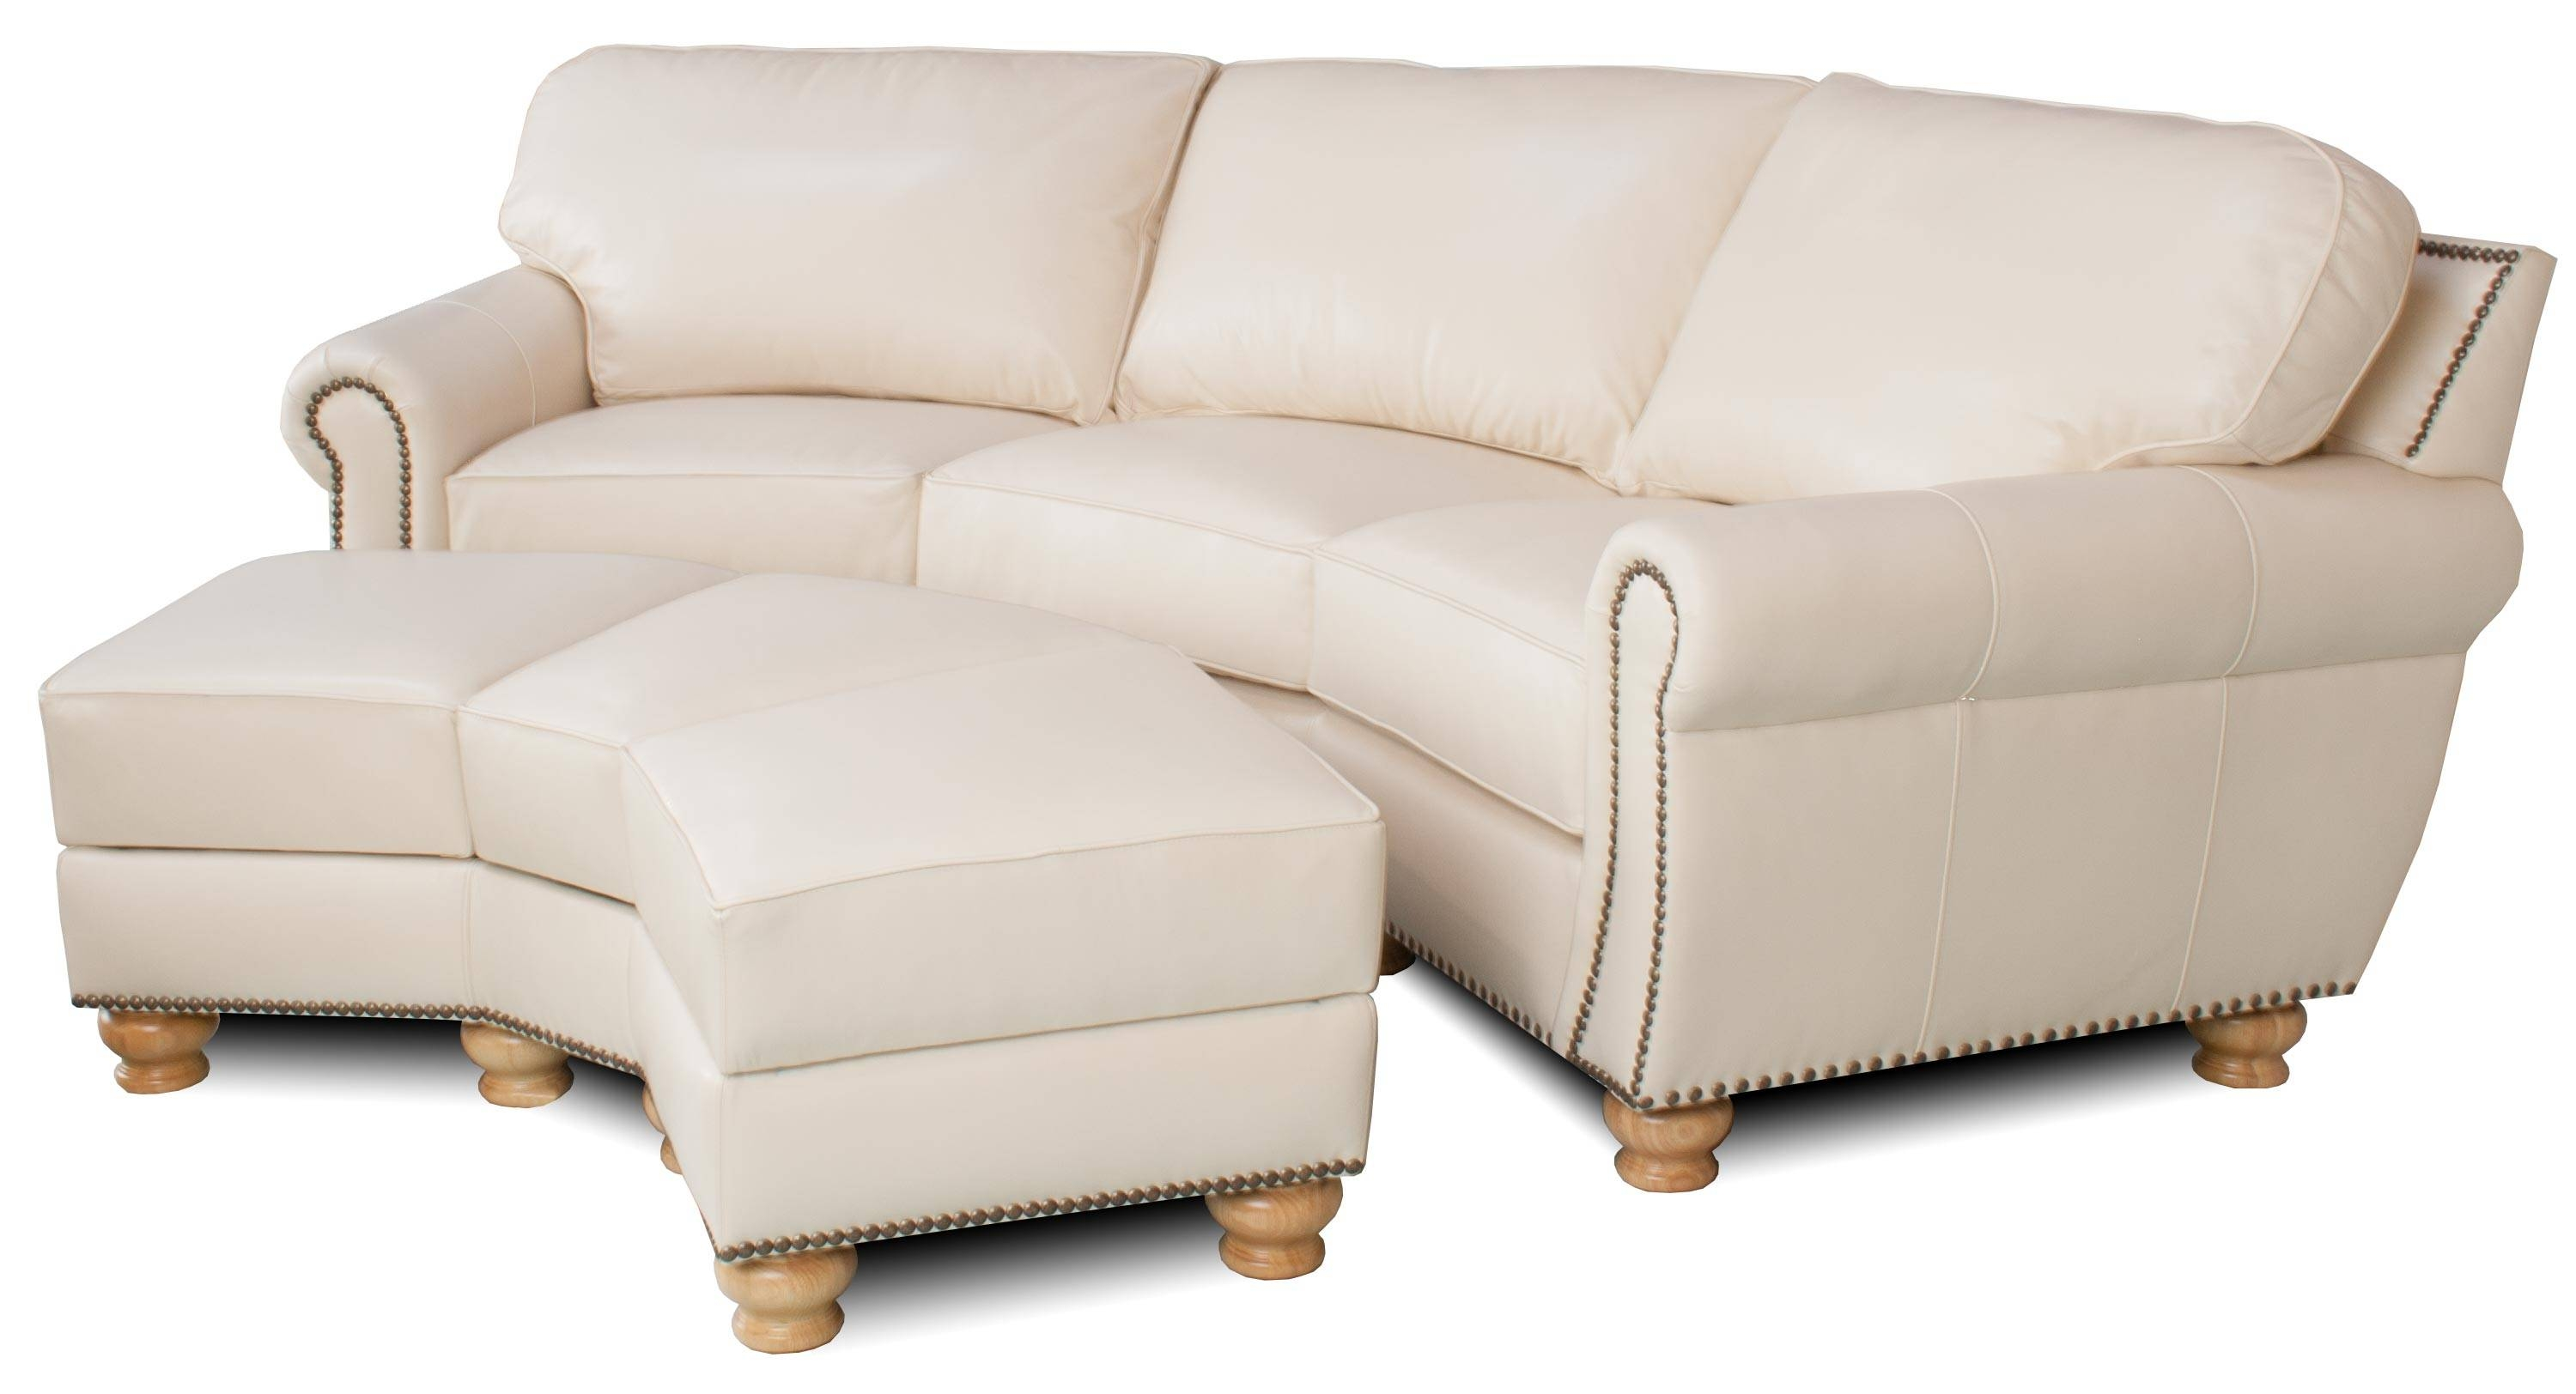 Angled Sofa Sectional – Leather Sectional Sofa Intended For Conversation Sofa Sectional (View 17 of 30)